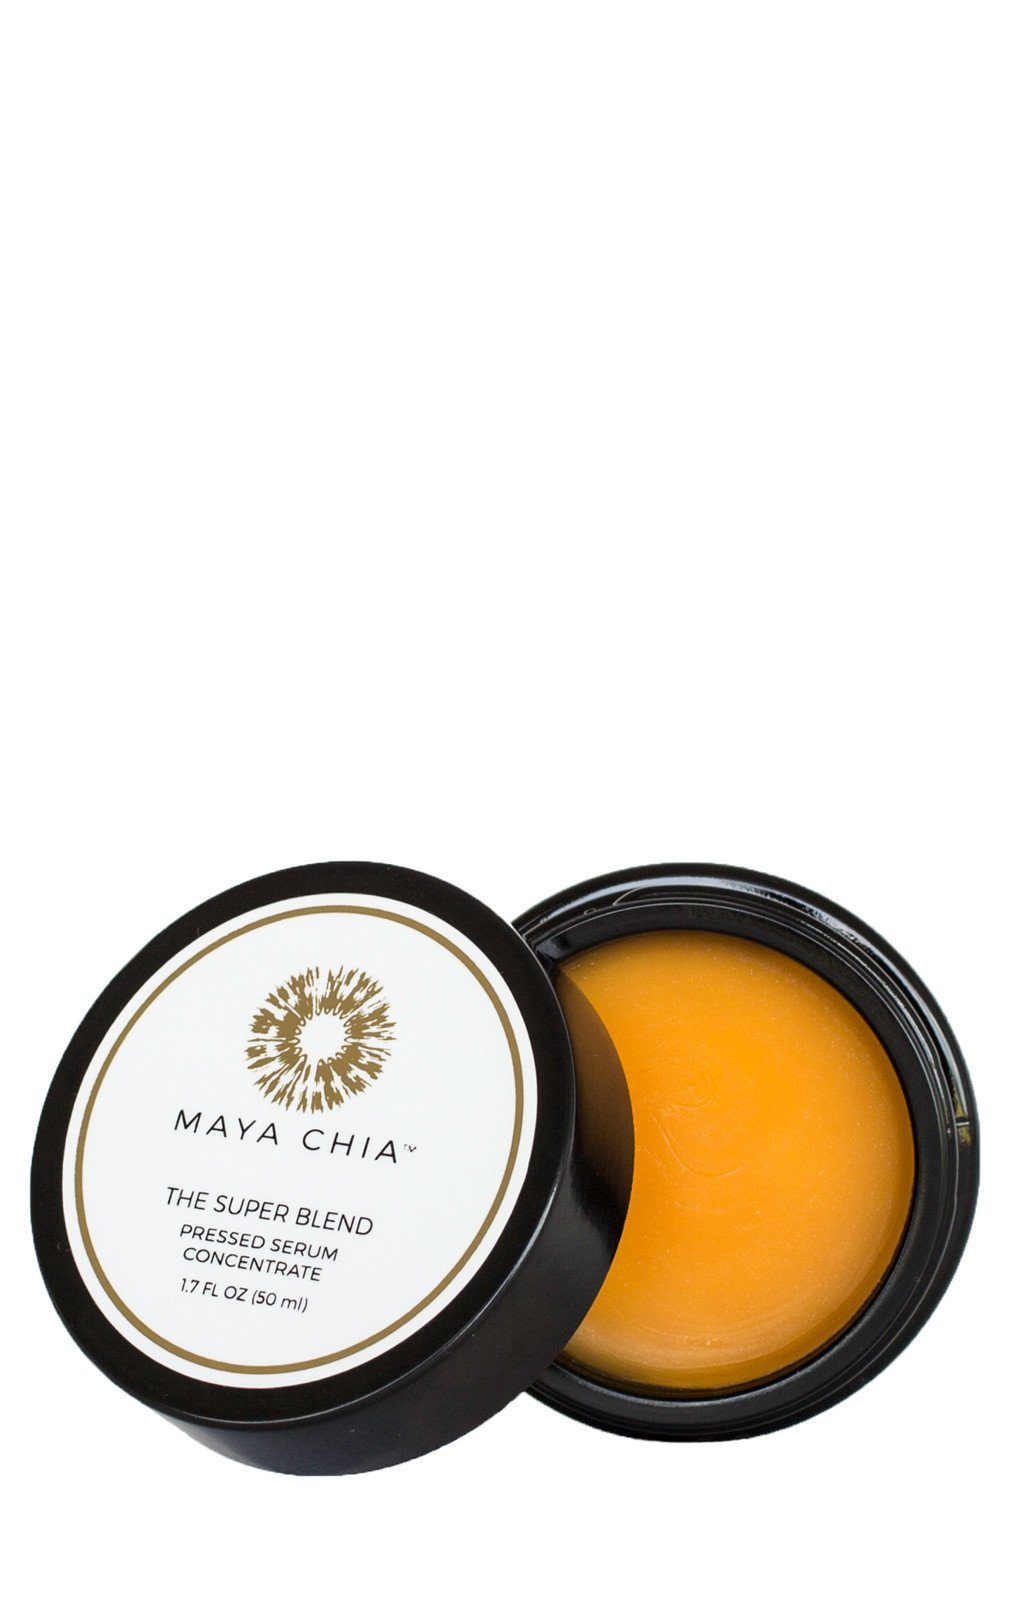 maya_chia_the_super_blend_pressed_serum_concentrate_at_credo_beauty_1080x.jpg